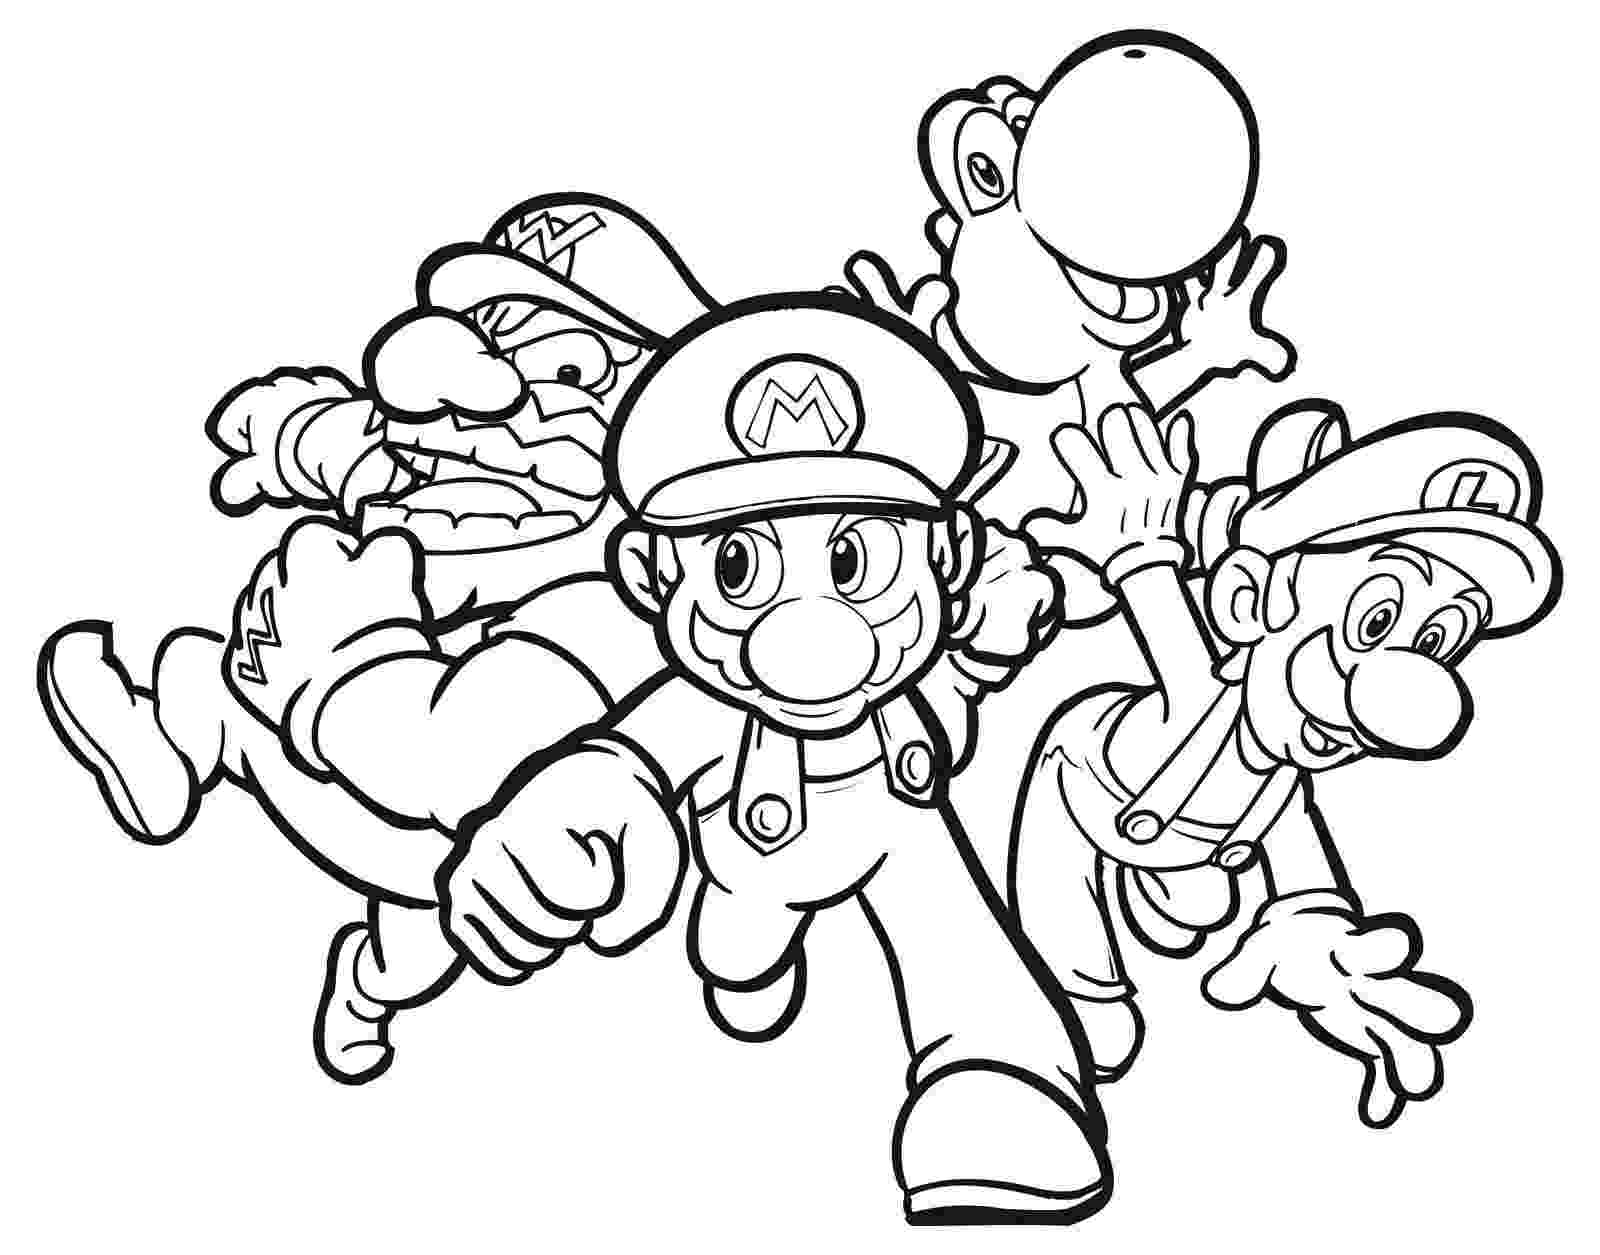 super mario print printable super mario coloring pages print super mario